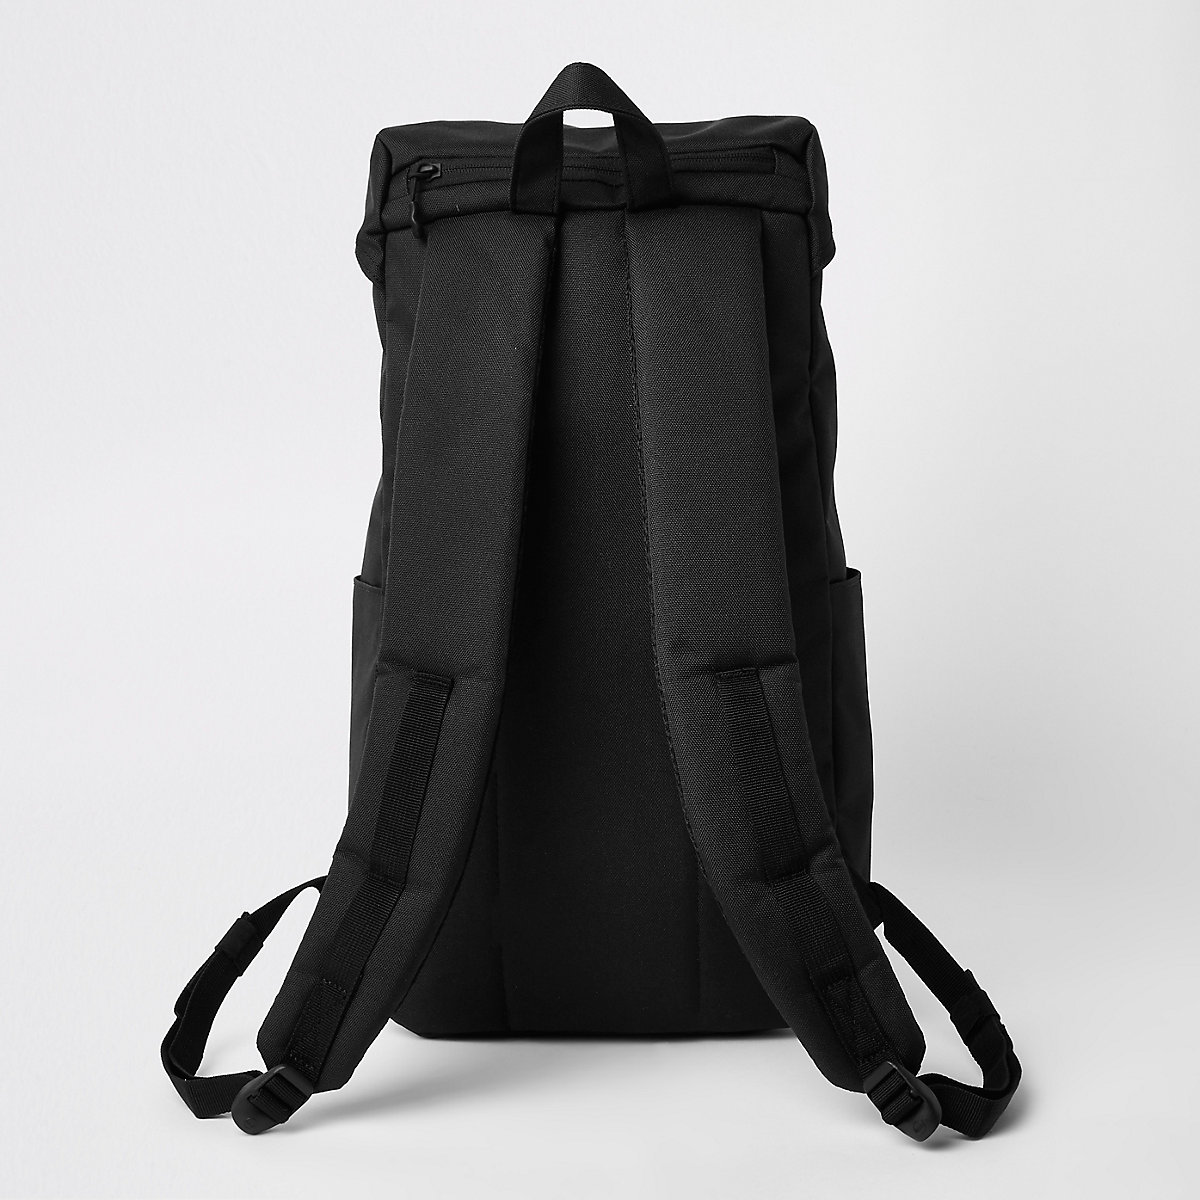 2b070ea947c4 Herschel black Thompson backpack - Backpacks   Backpacks - Bags - men